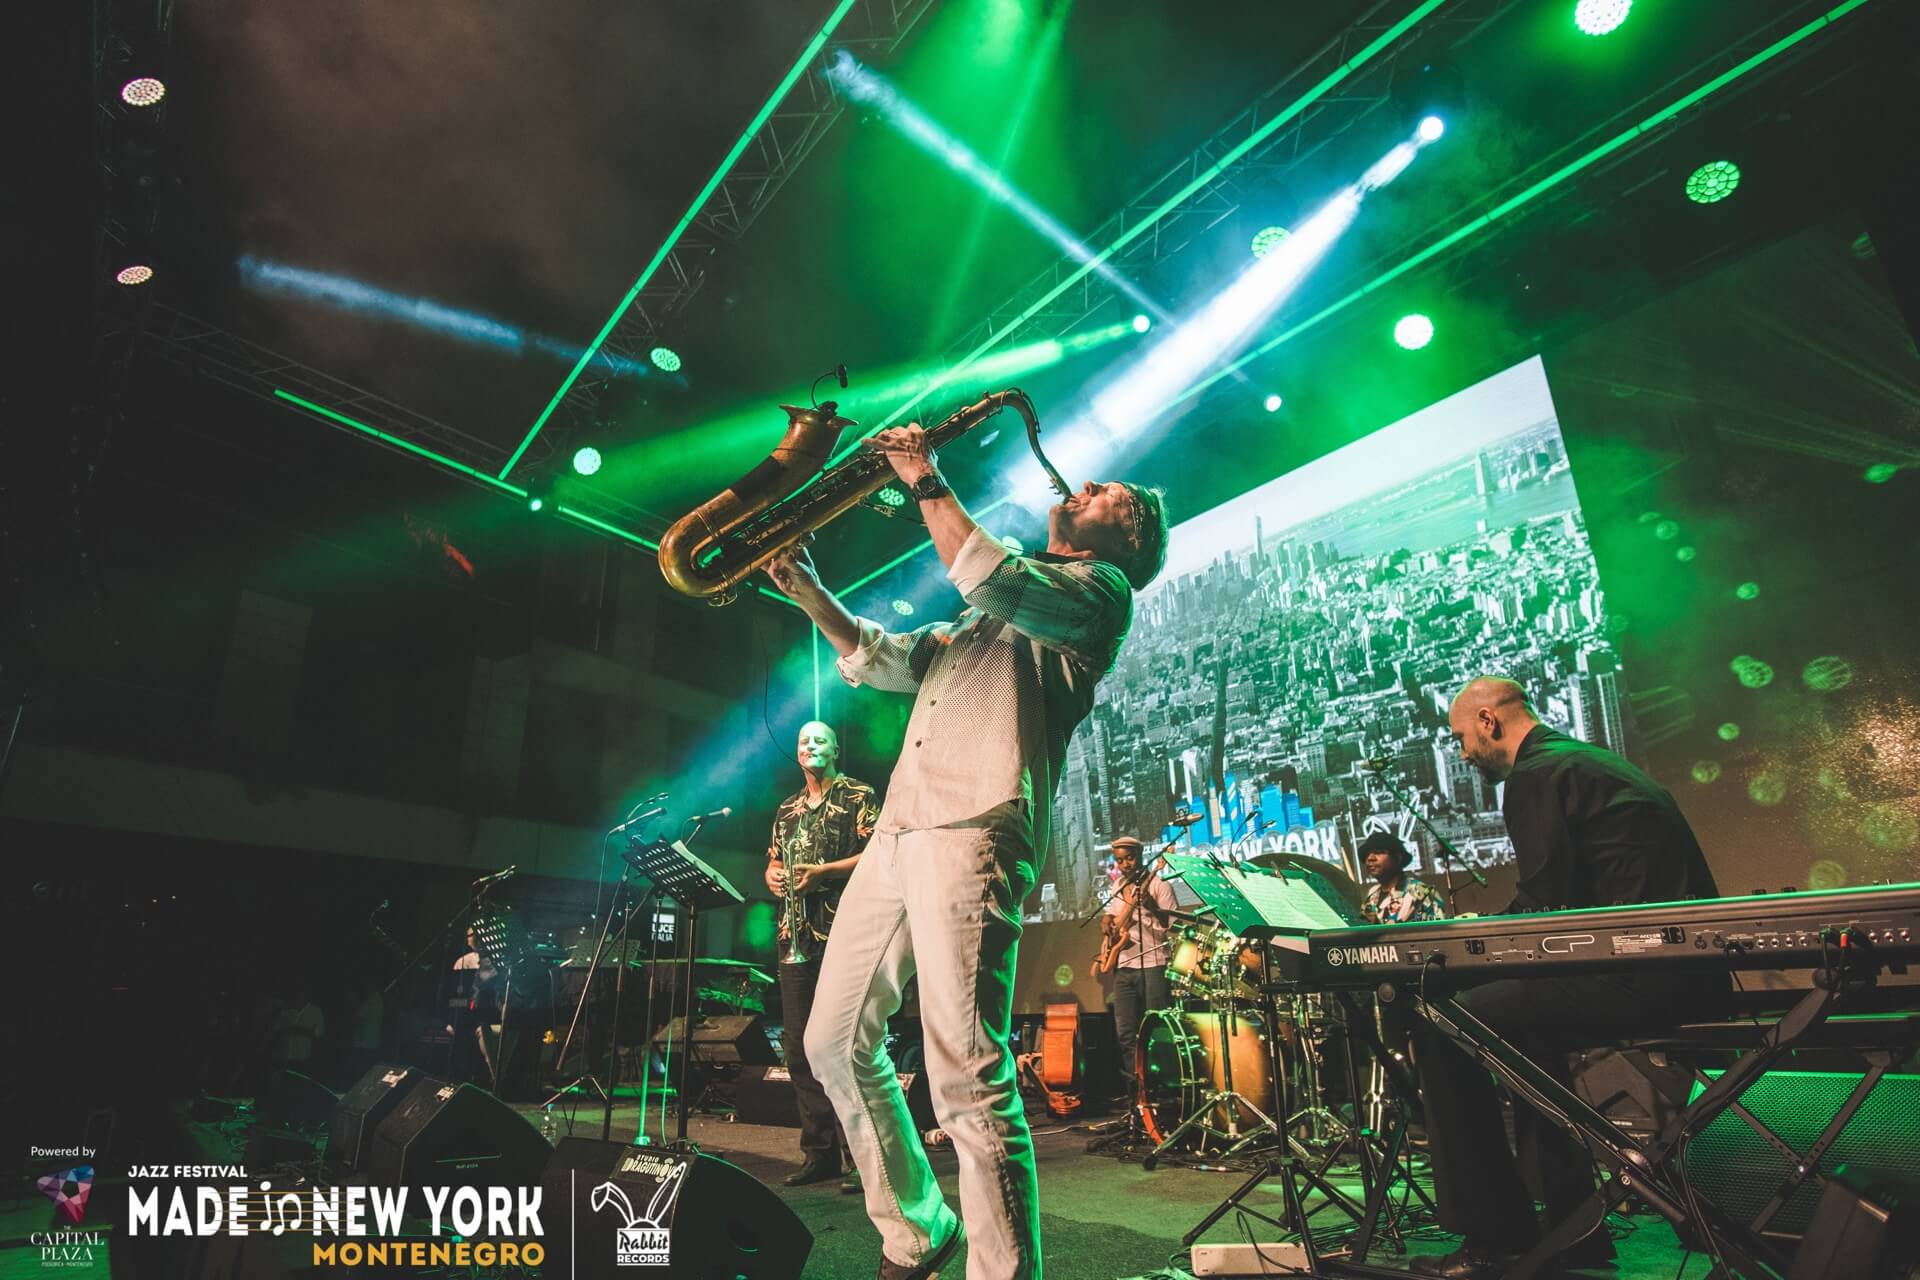 Made in New York Jazz Festival Montenegro 2019